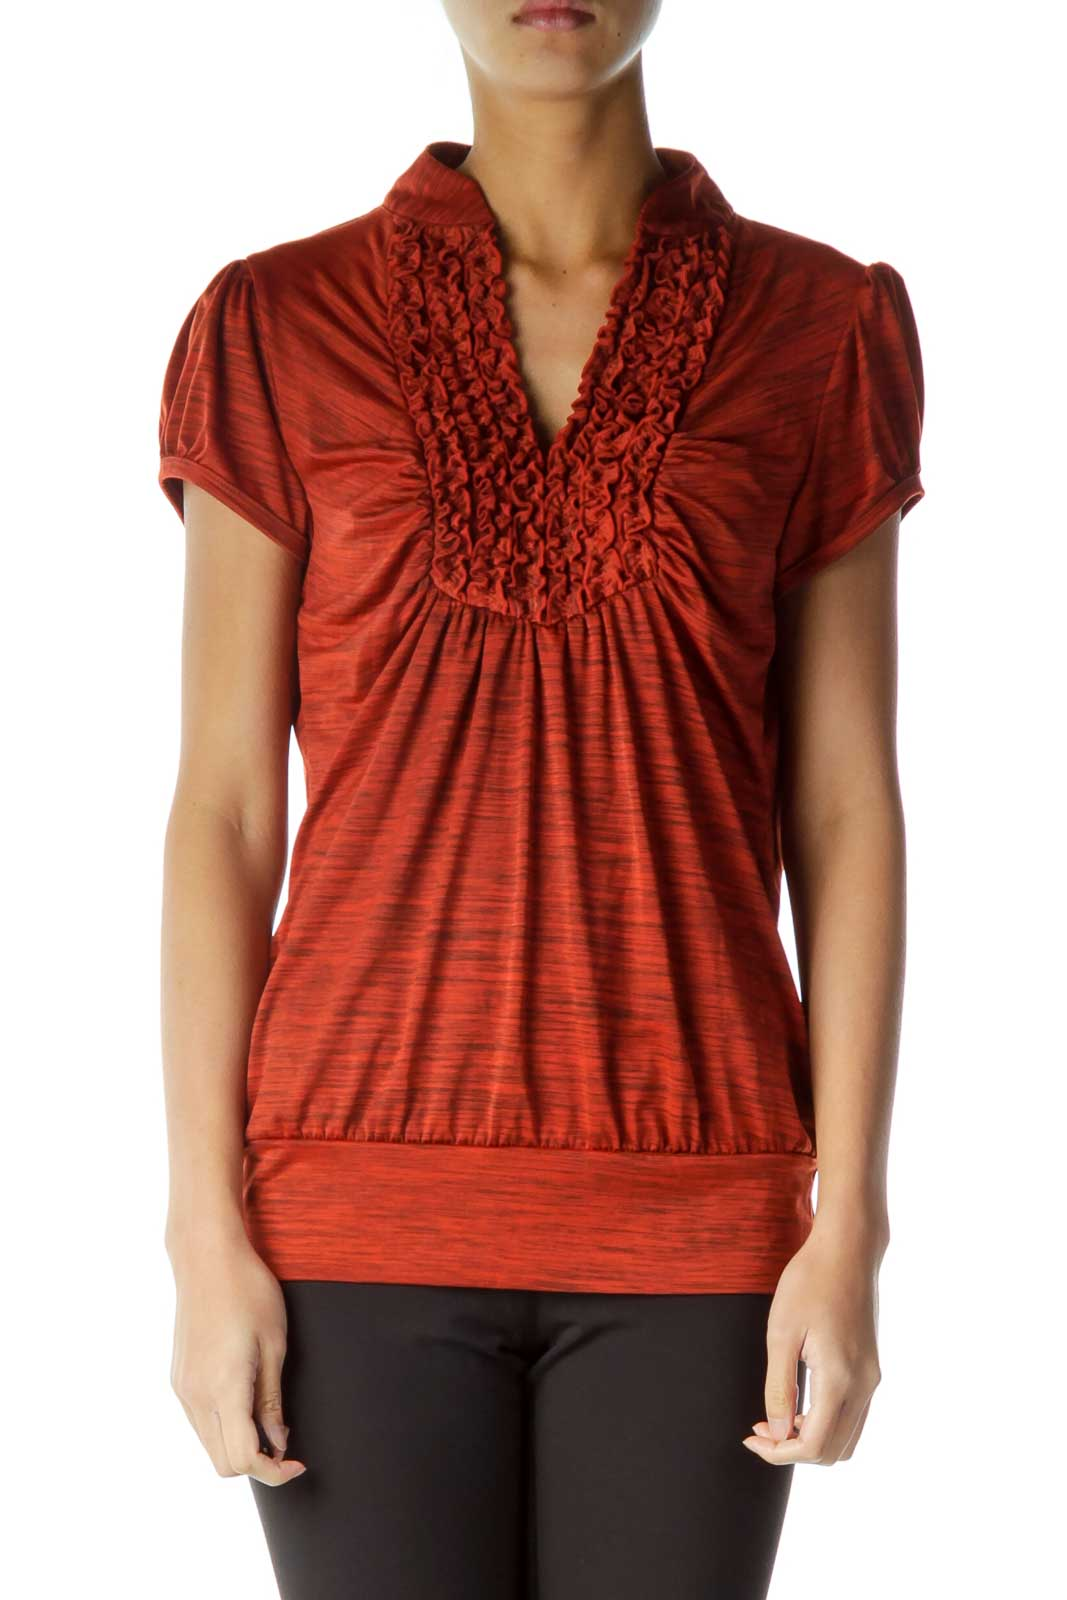 Orange Ruffle Detailed Top Front